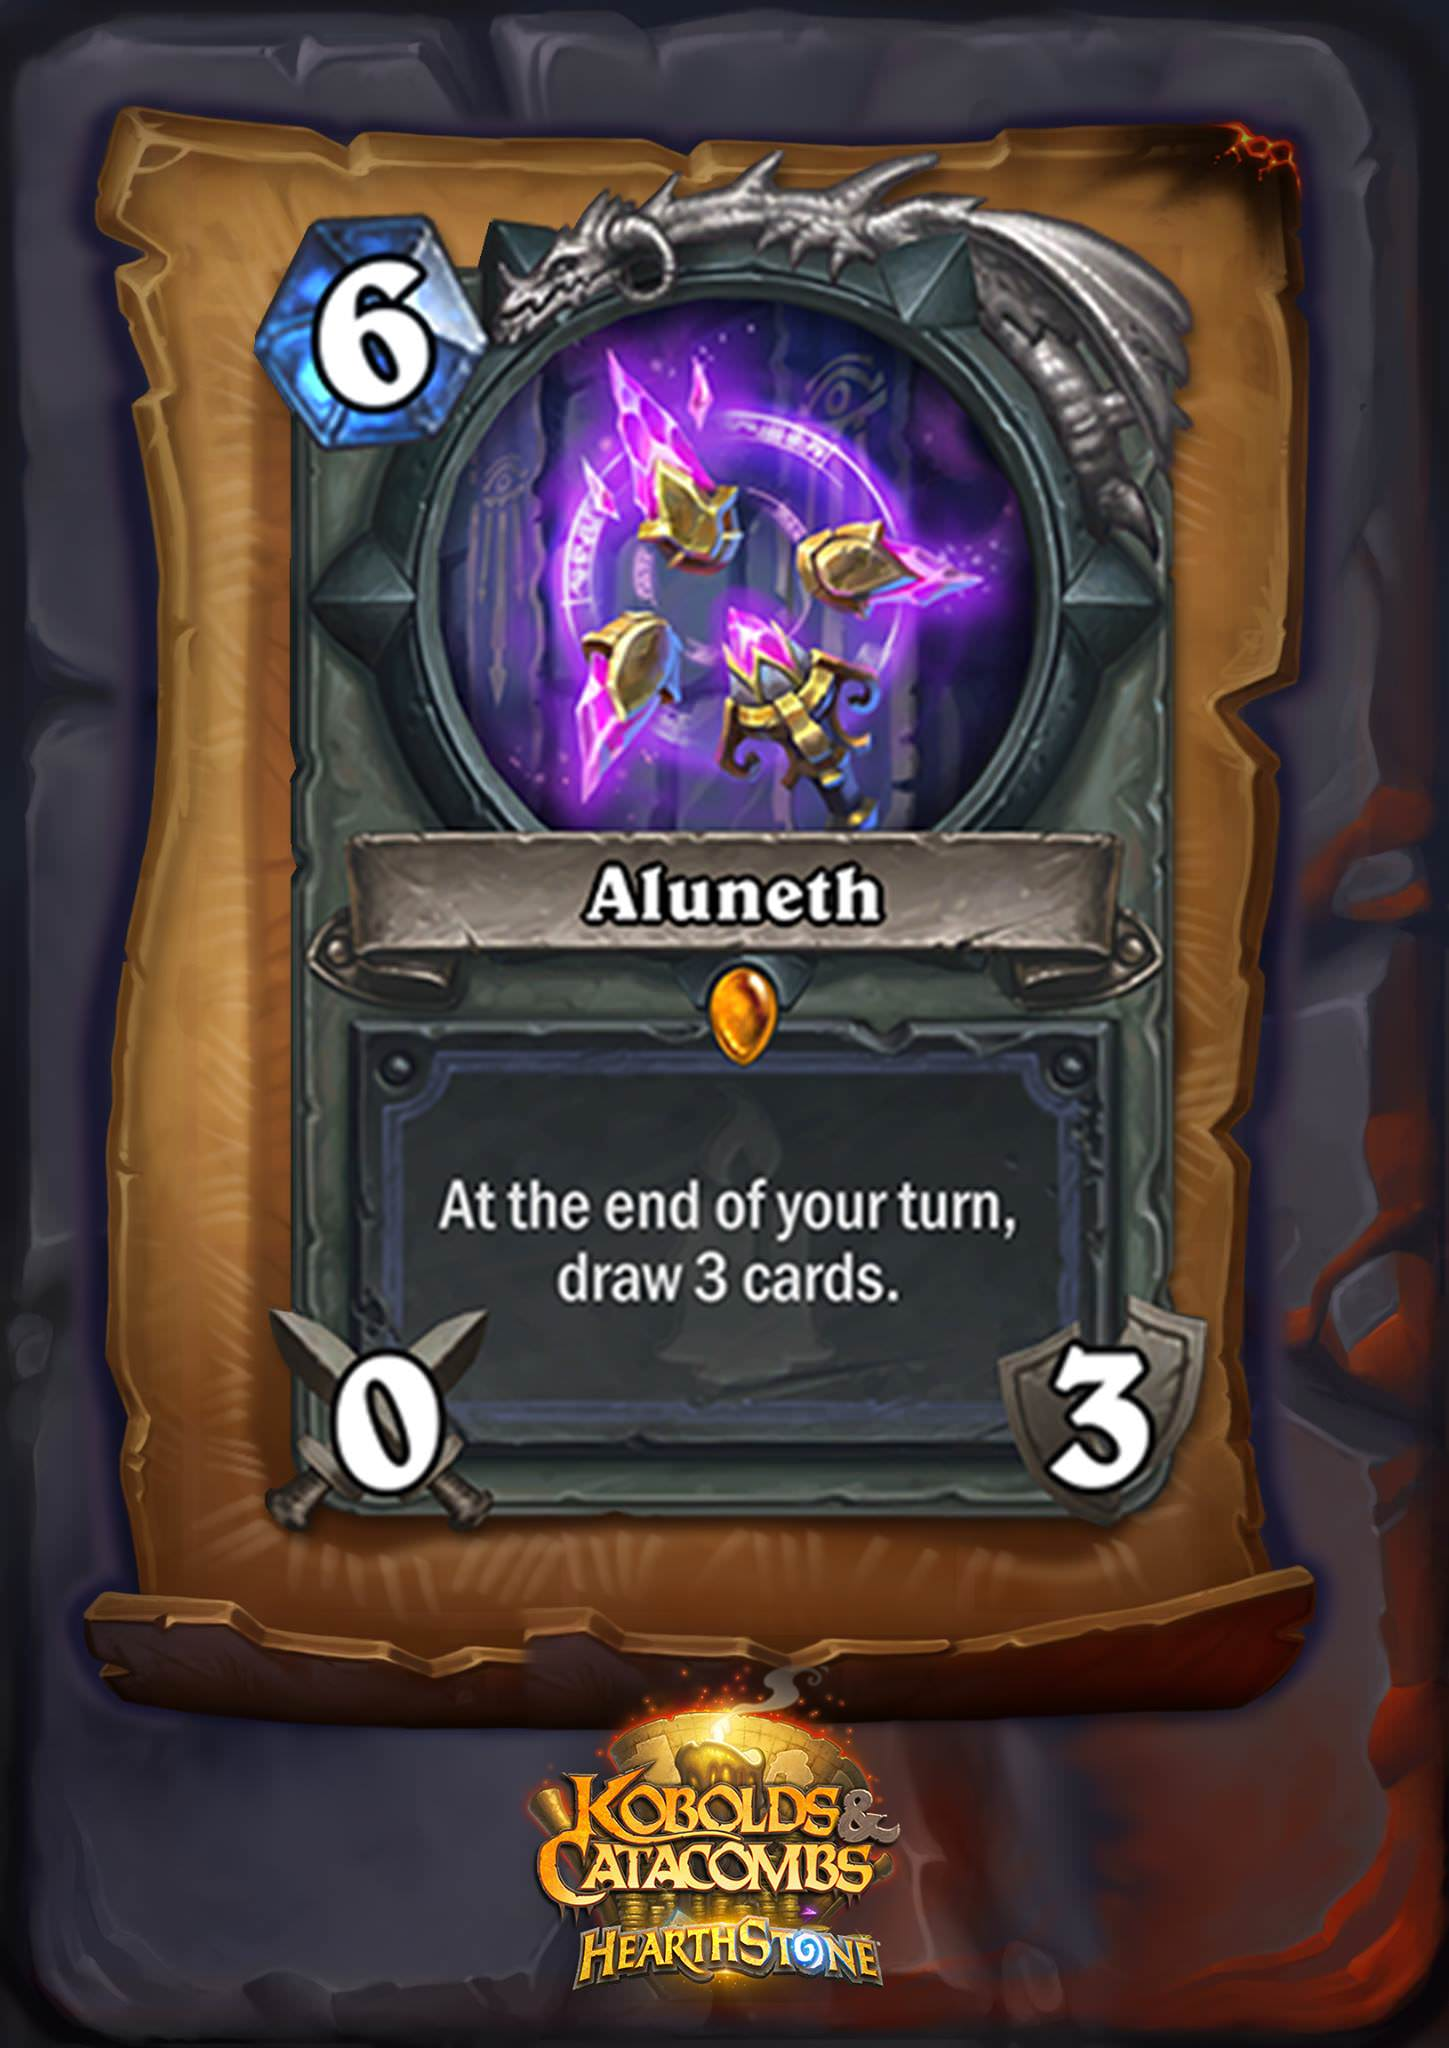 """Aluneth is a six mana 0/3 weapon. The card text reads: """"At the end of your turn, draw 3 cards."""""""